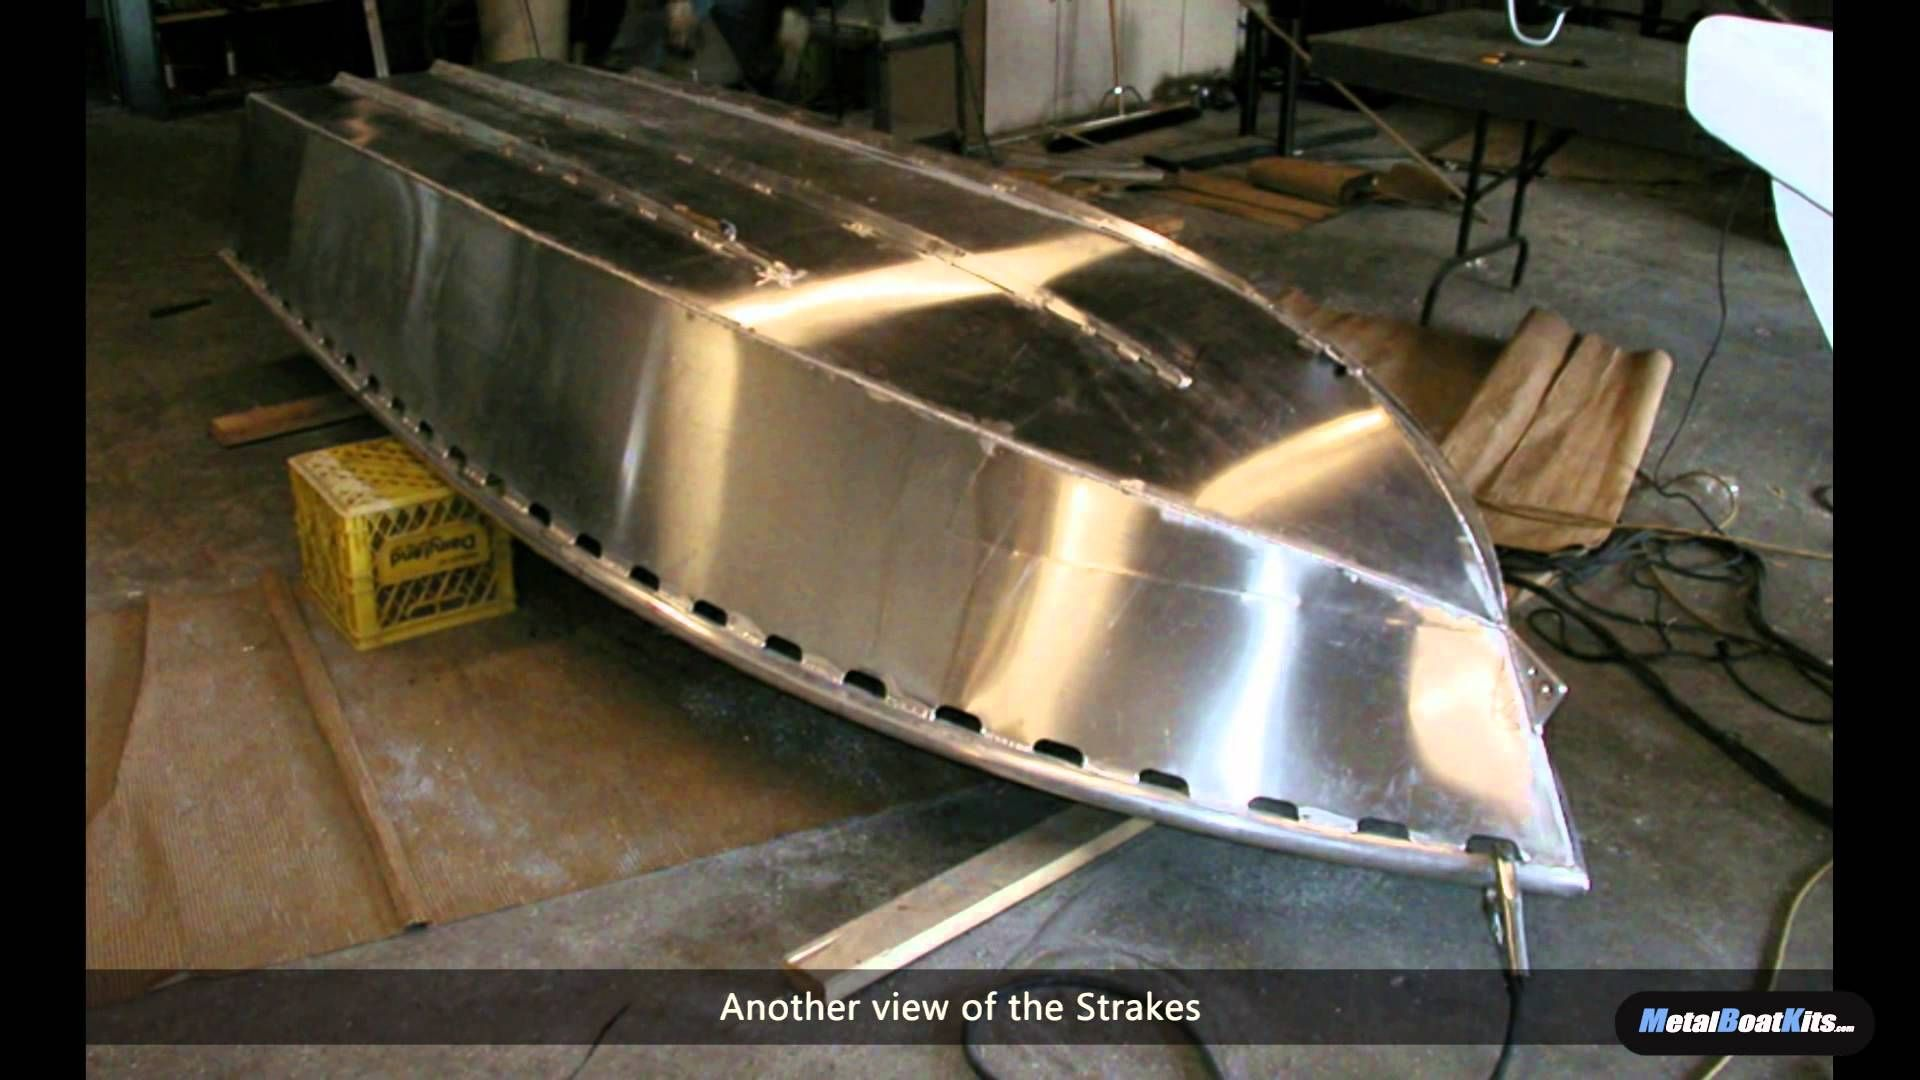 Building A 12 Foot Aluminum Fishing Skiff From A Kit Aluminum Boat Kits Aluminum Fishing Boats Aluminum Boat